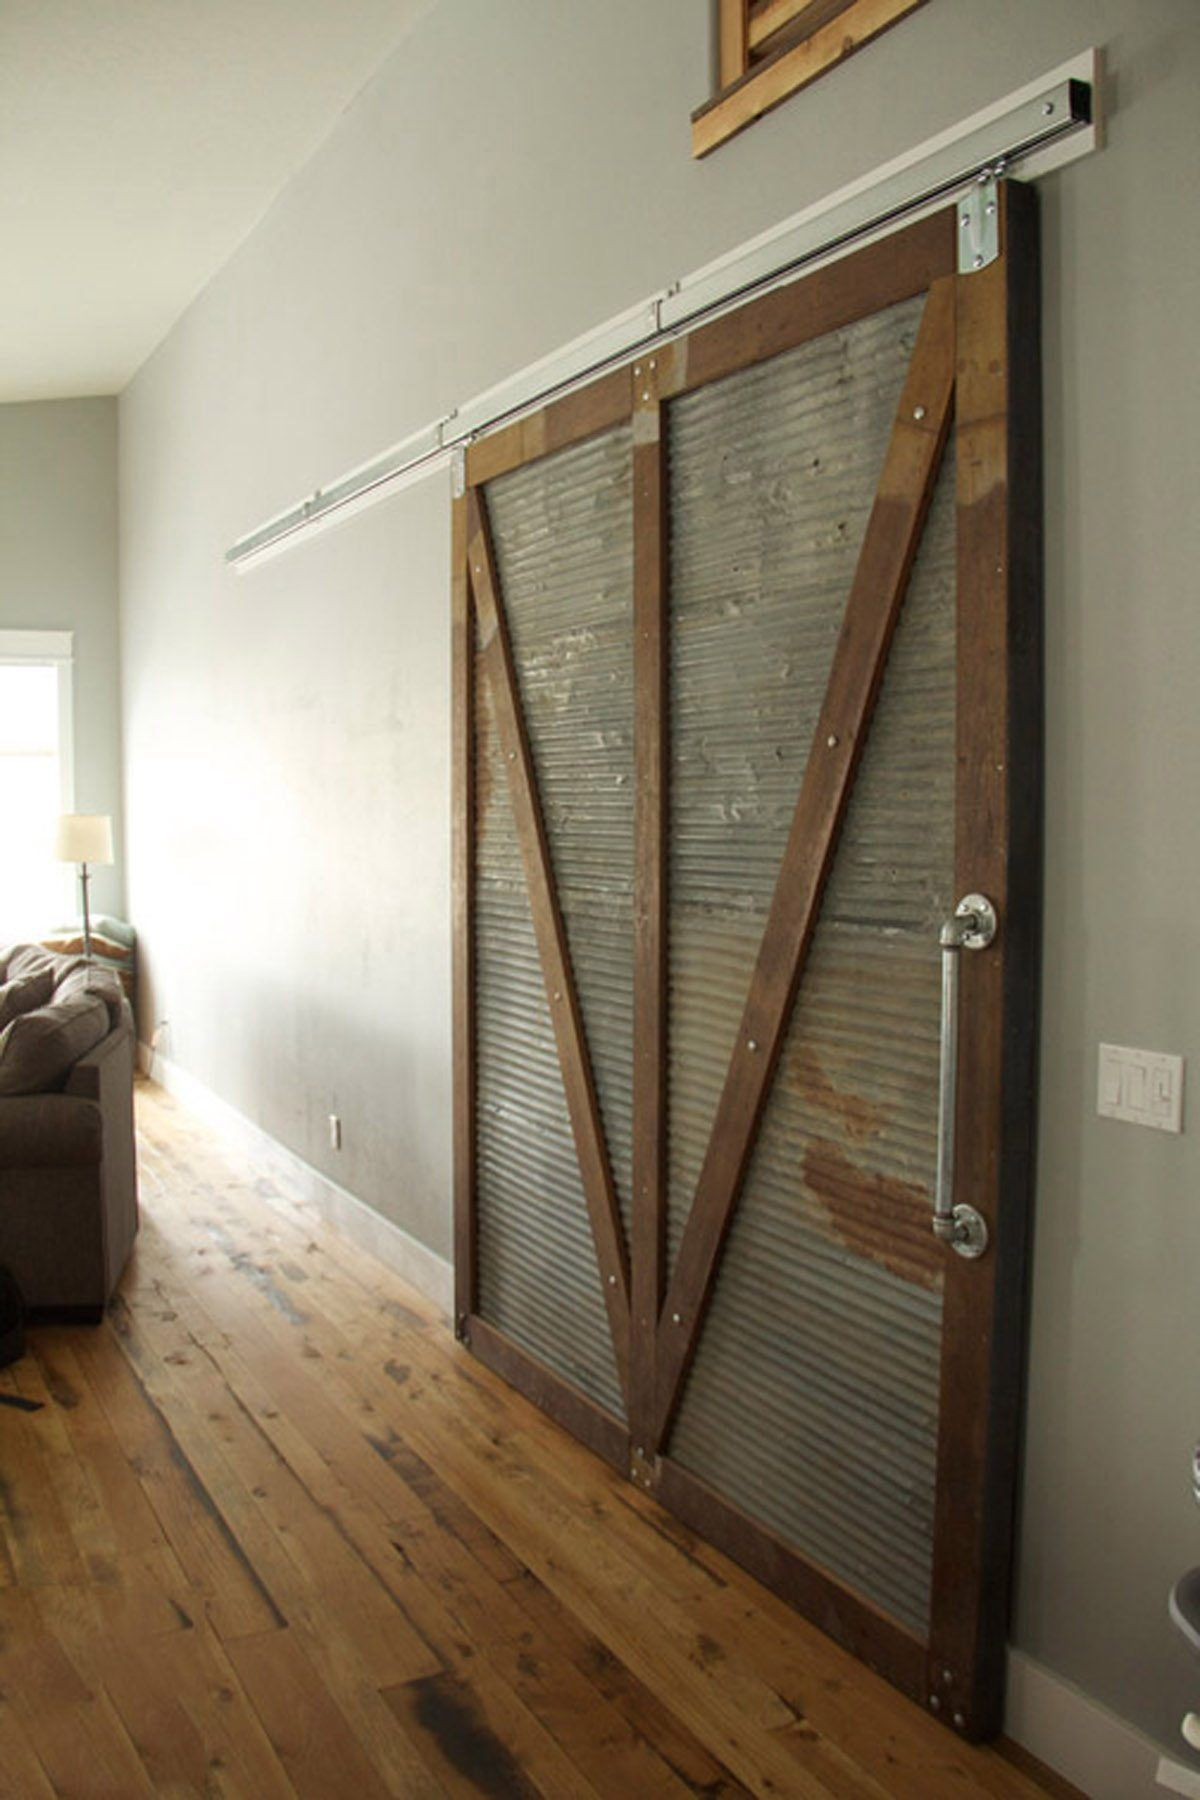 Corrugated Roofing Door Mount On Reclaimed Corrugated Metal From Grain Designs In Fargo Nd Wood Home Decor Doors Rustic House